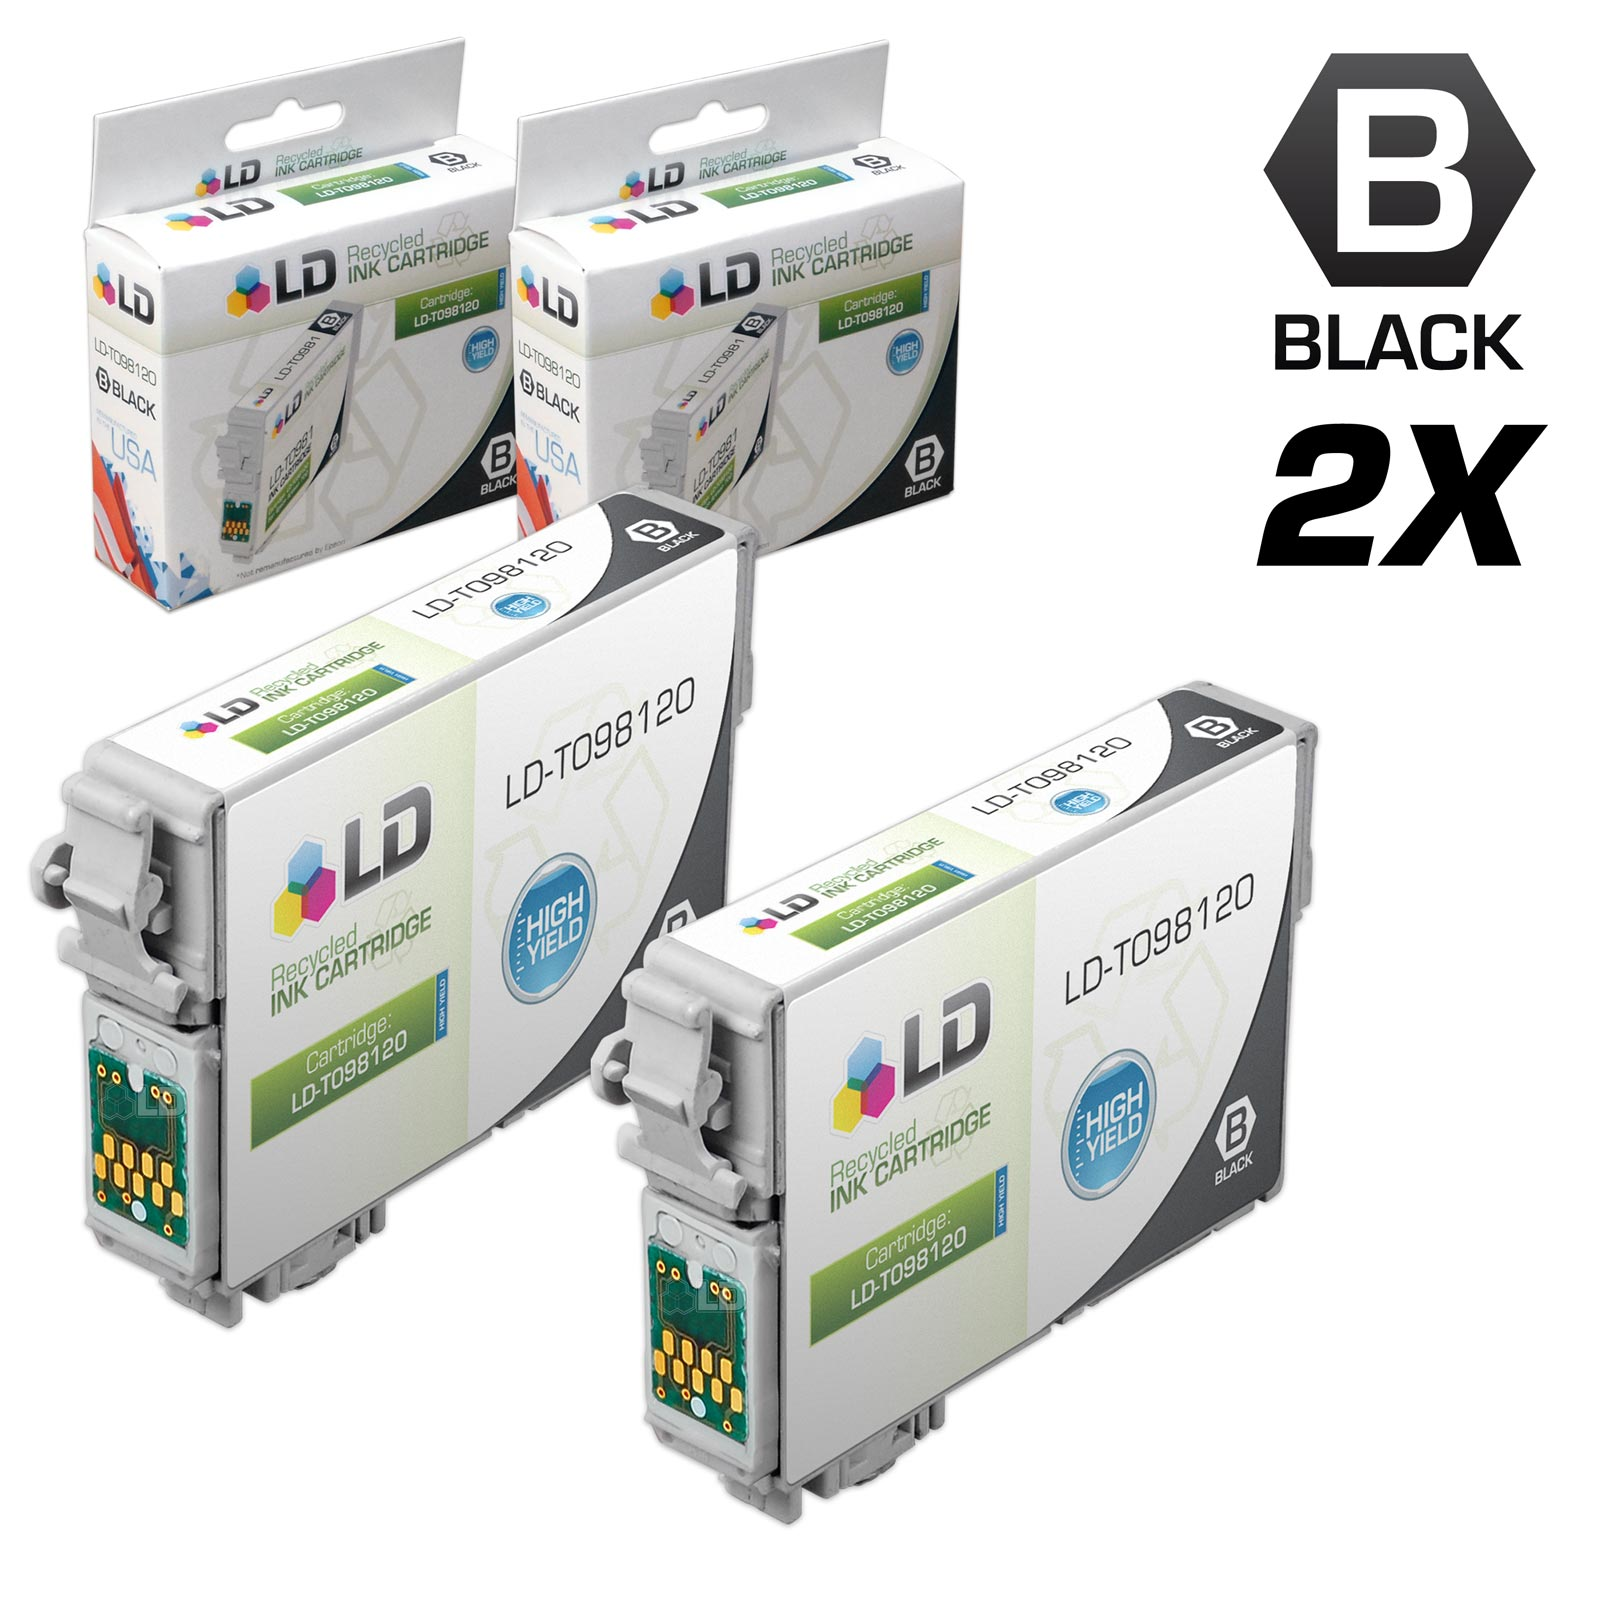 LD�� Remanufactured Replacements for Epson T0981 Set of 2 High Yield Ink Cartridges Includes: 2 Black T098120 for